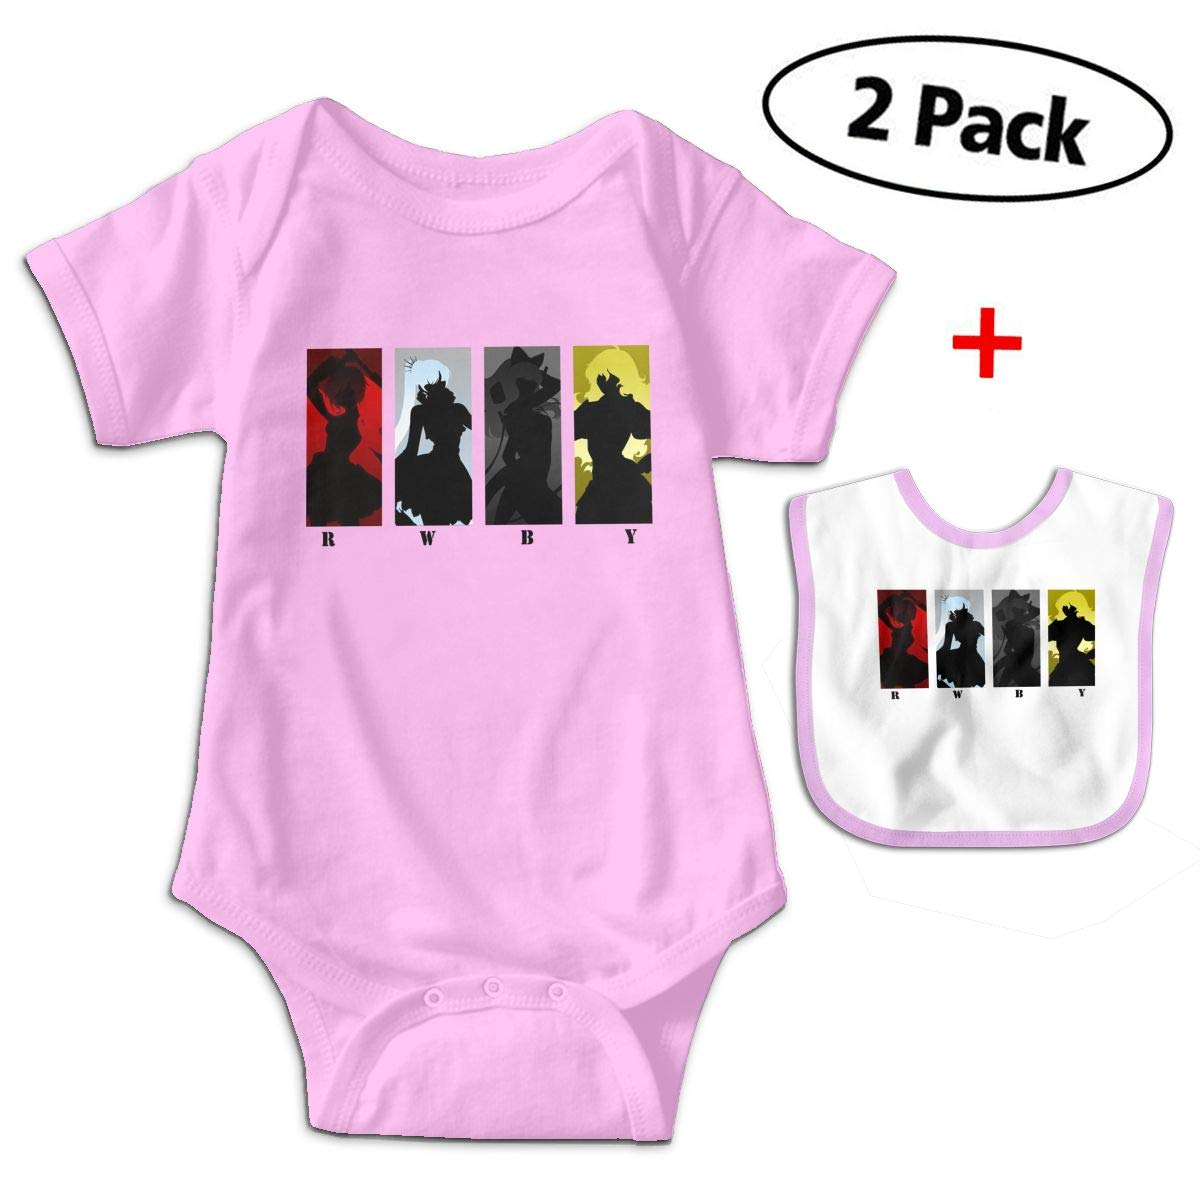 KAYERDELLE Rwbyposter Babys Kids Short Sleeve Jumpsuit Outfits for 3-24 Months and Baby Bib